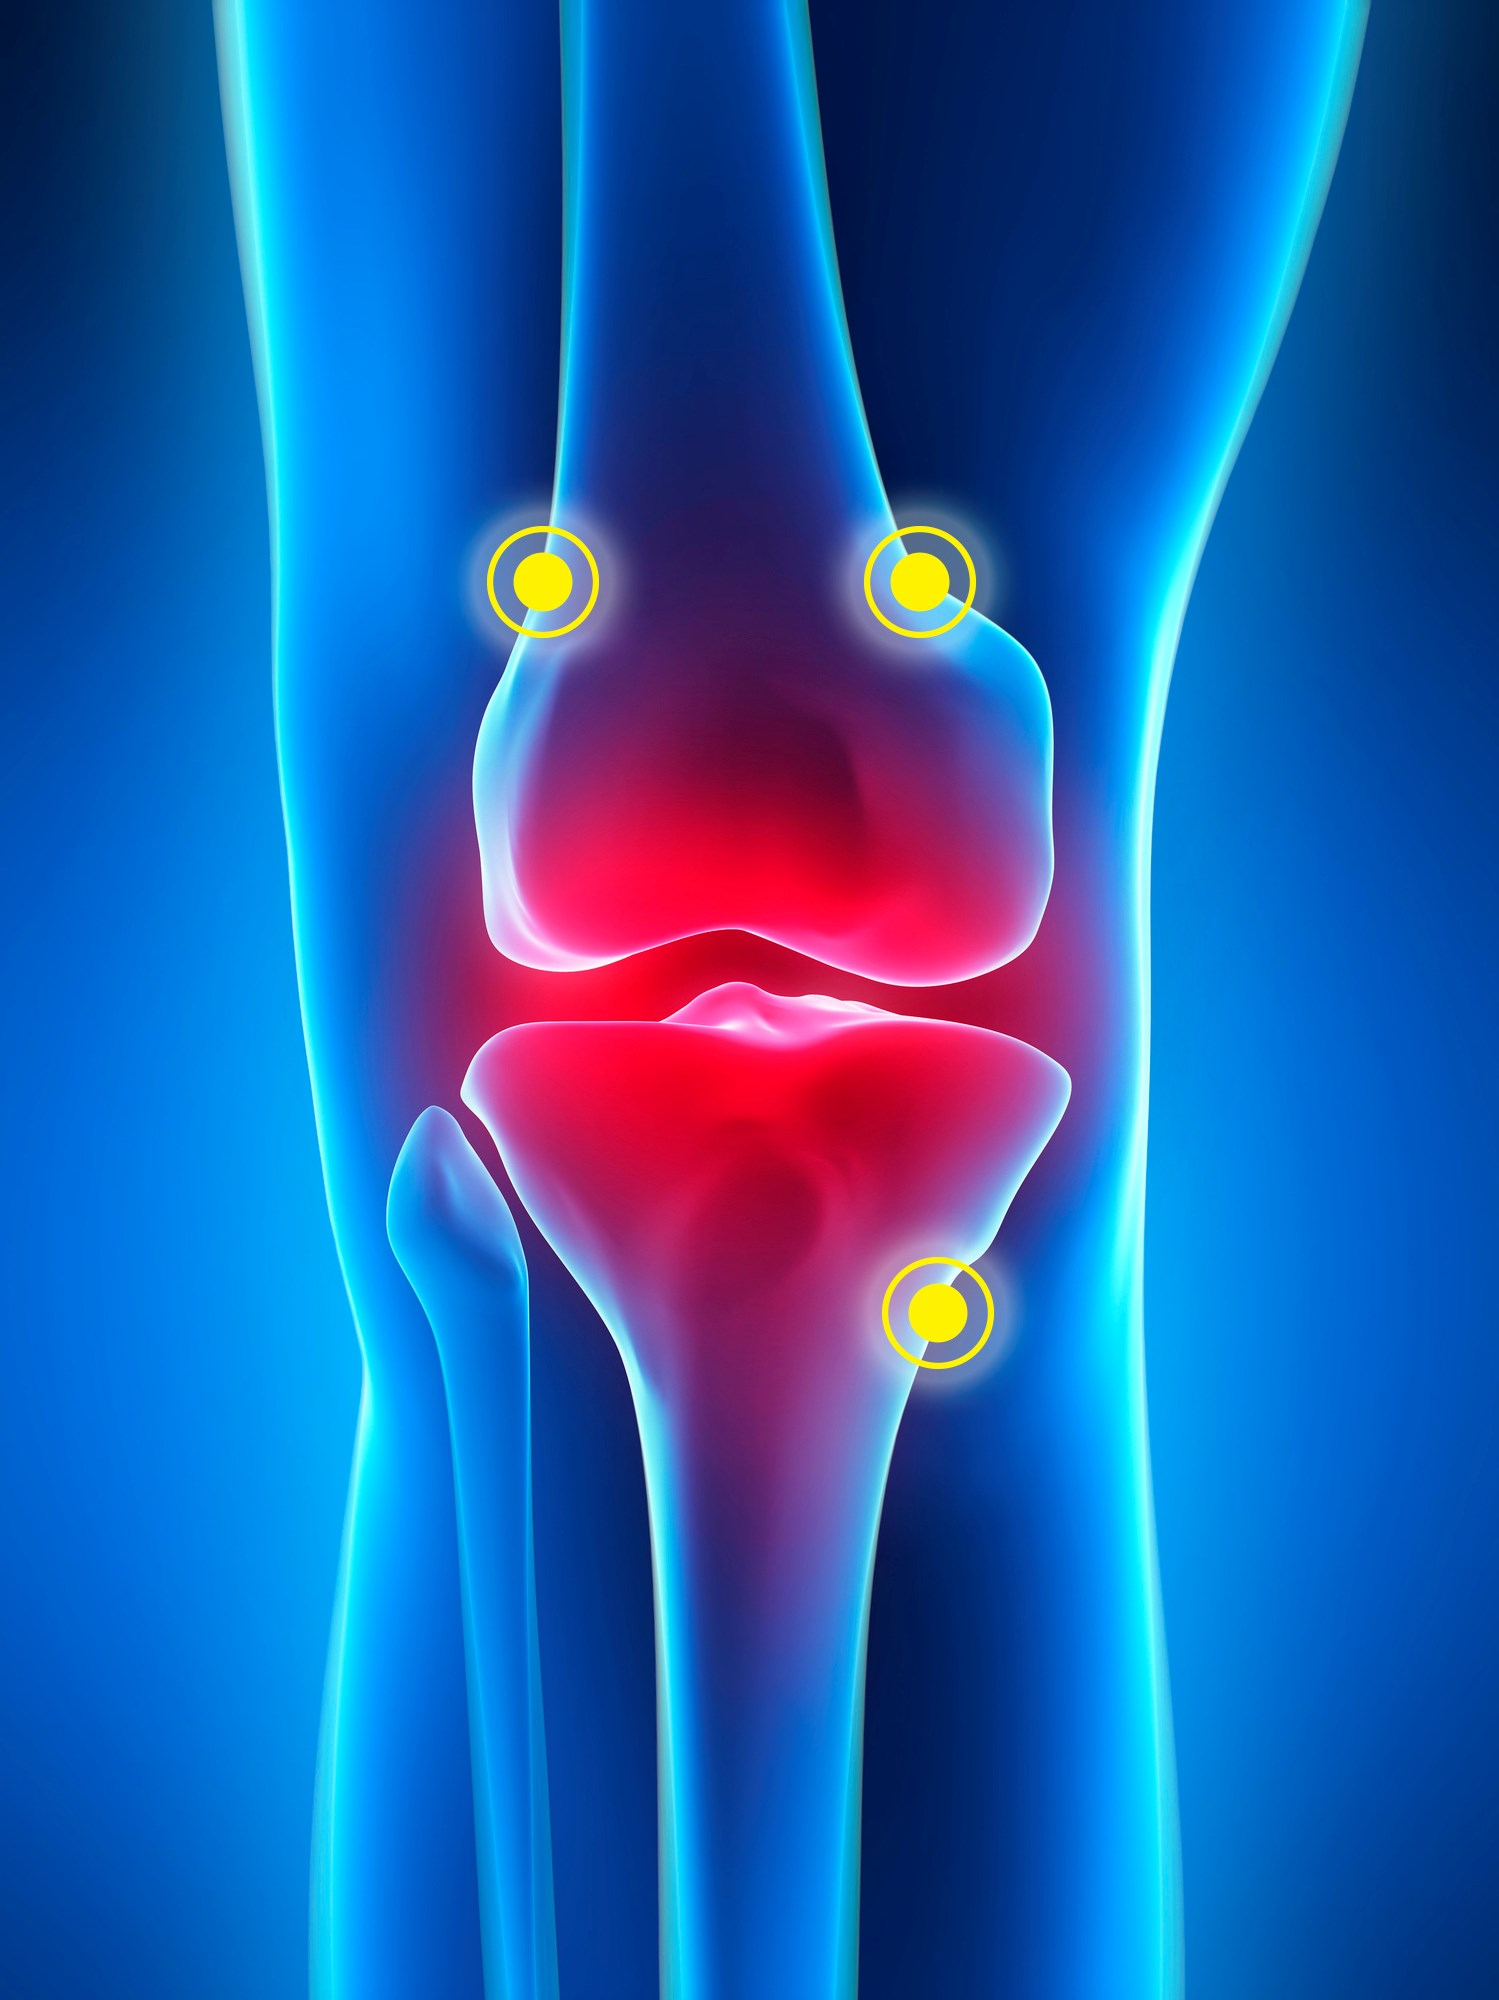 FDA Clears Radiofrequency Treatment for Osteoarthritis Knee Pain